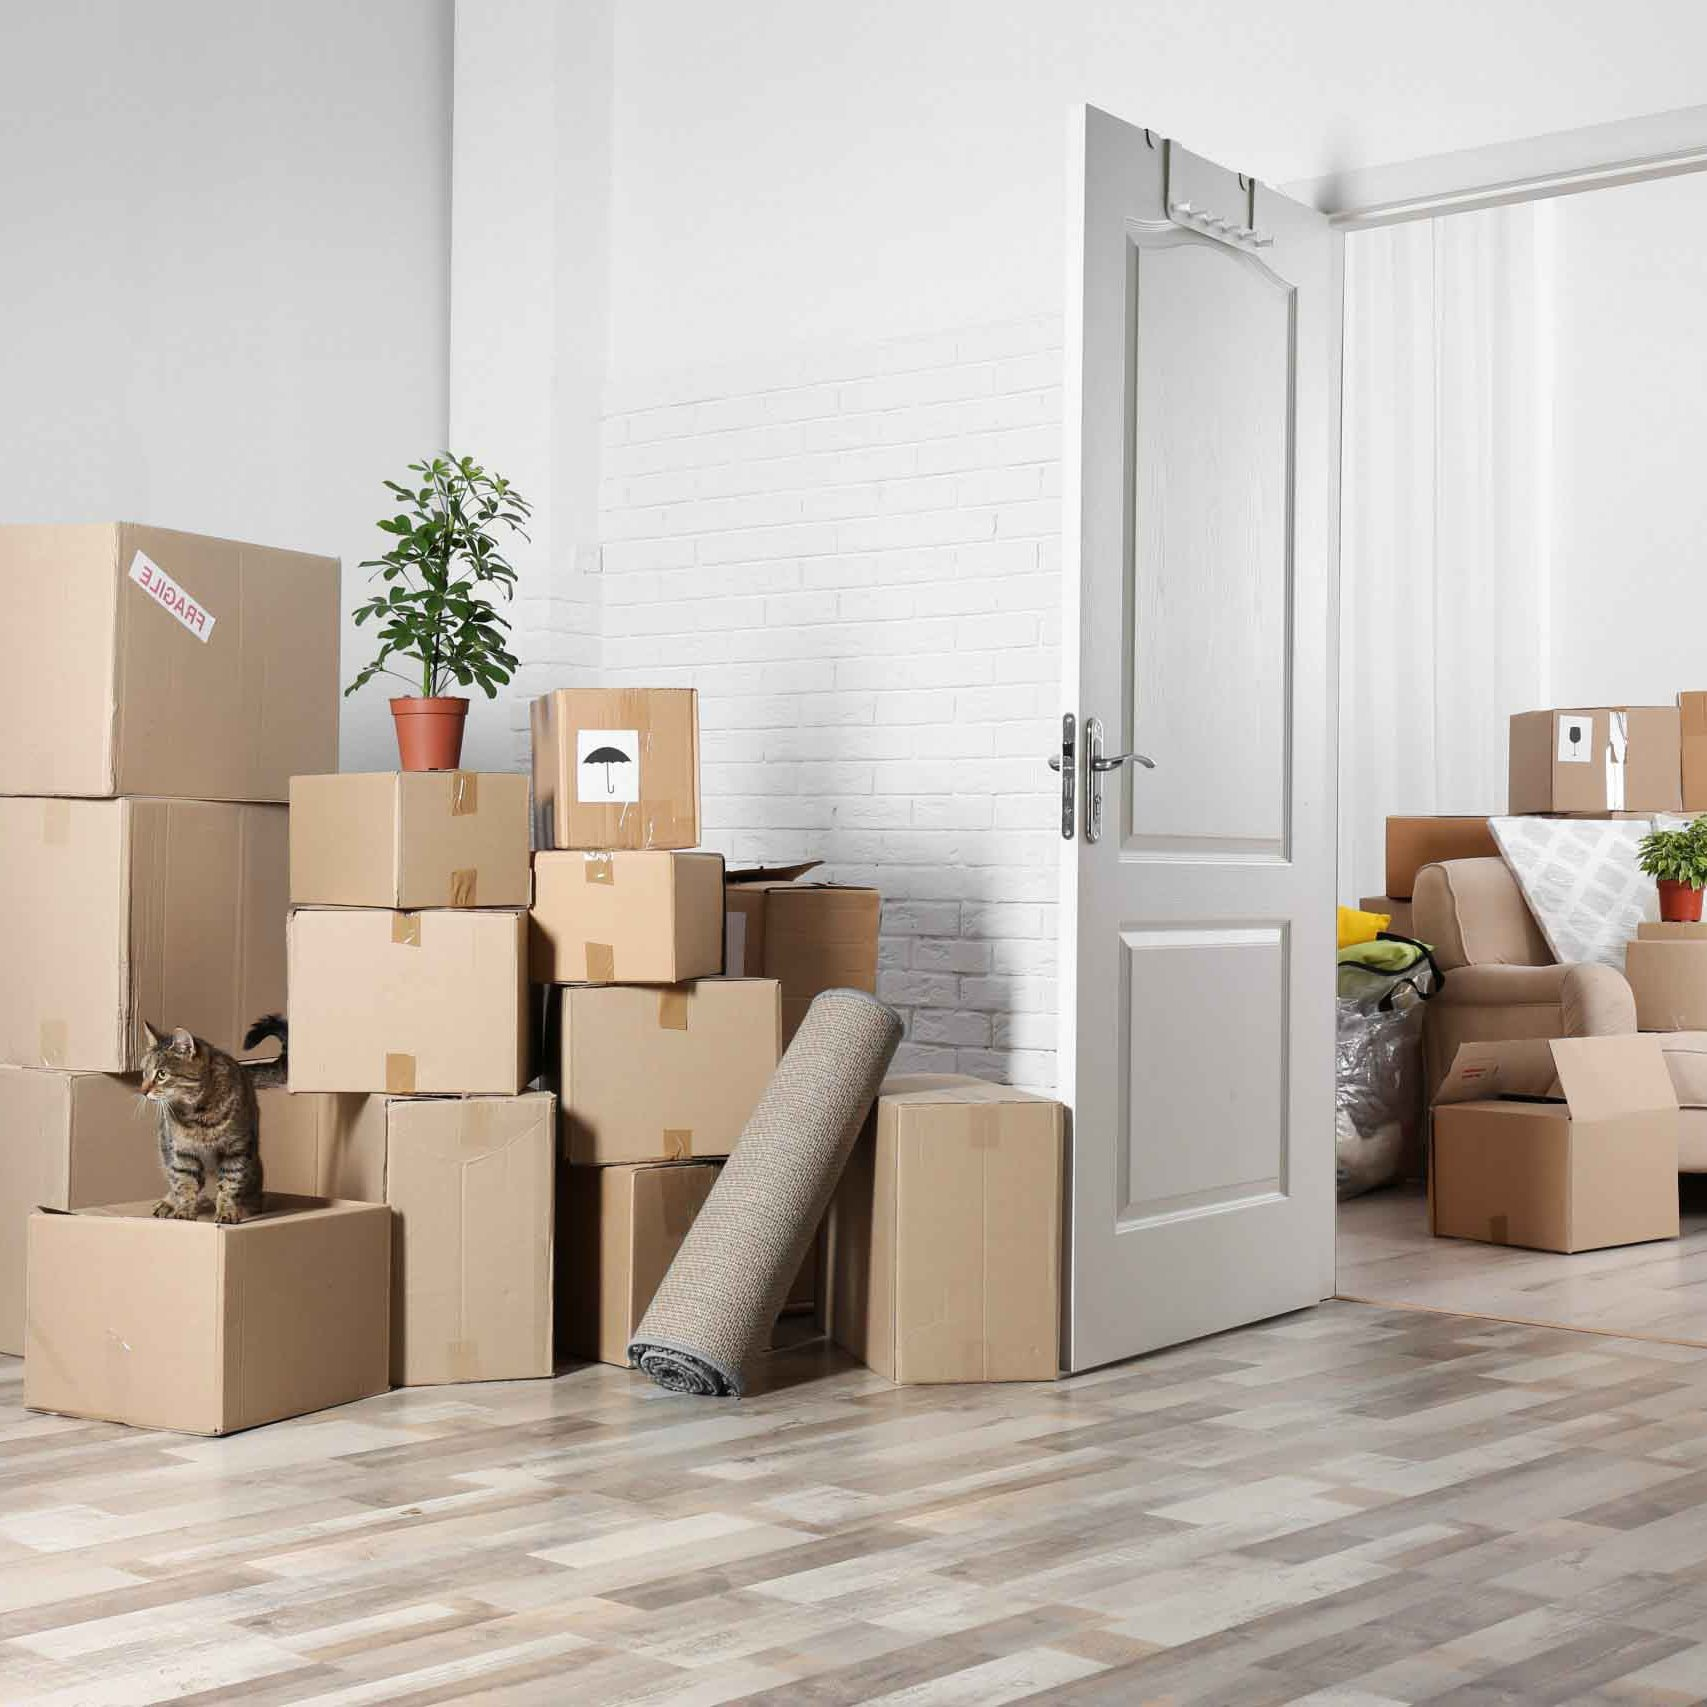 home movers Houston